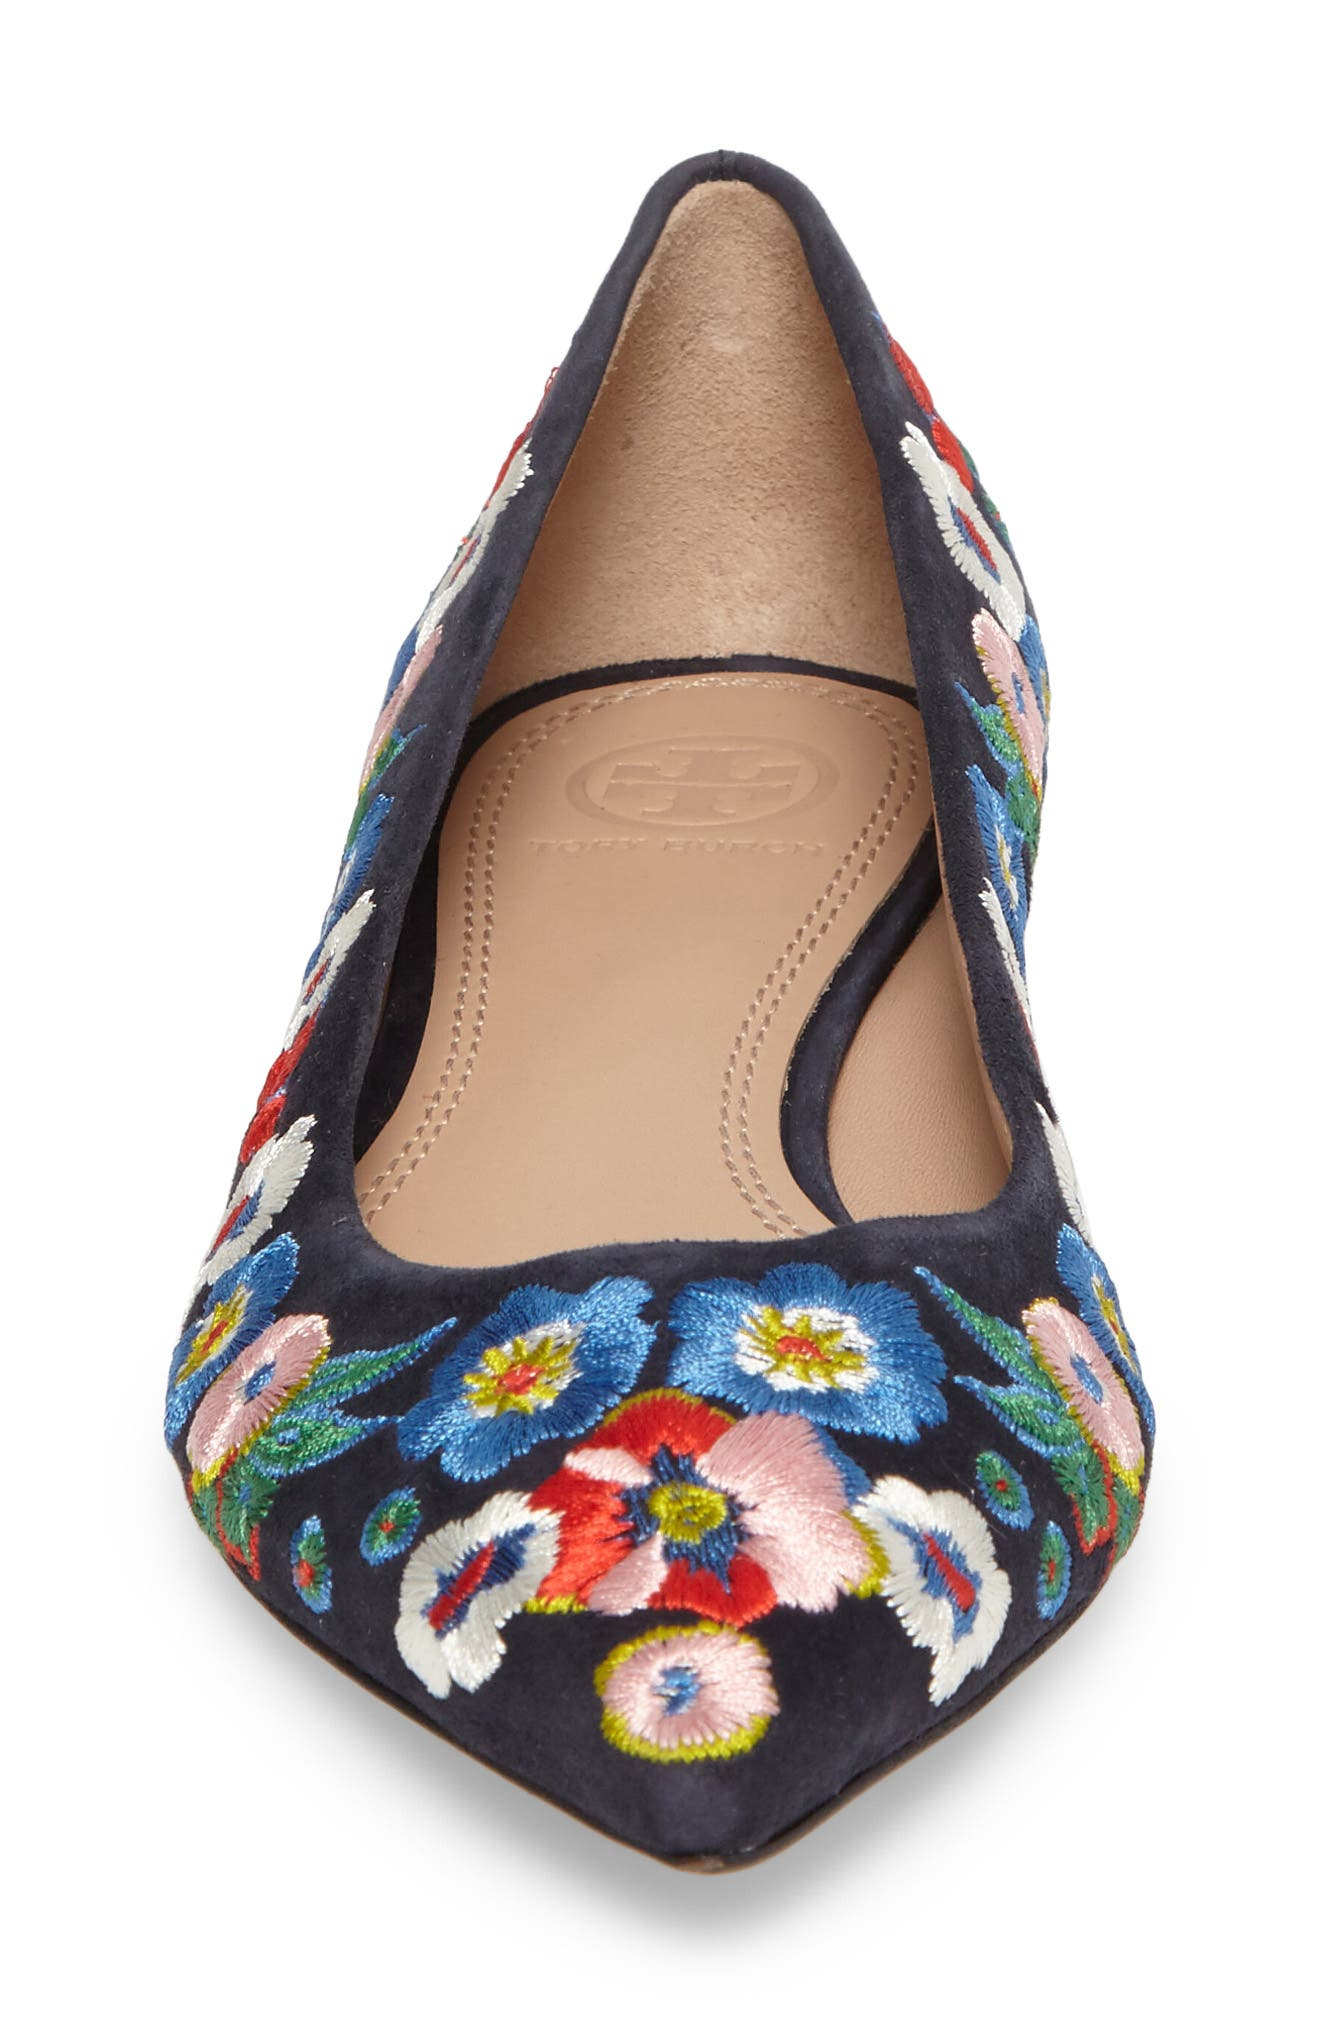 Rosemont Flower Embroidered Flat,                             Alternate thumbnail 4, color,                             Tory Navy/ Pansy Bouquet